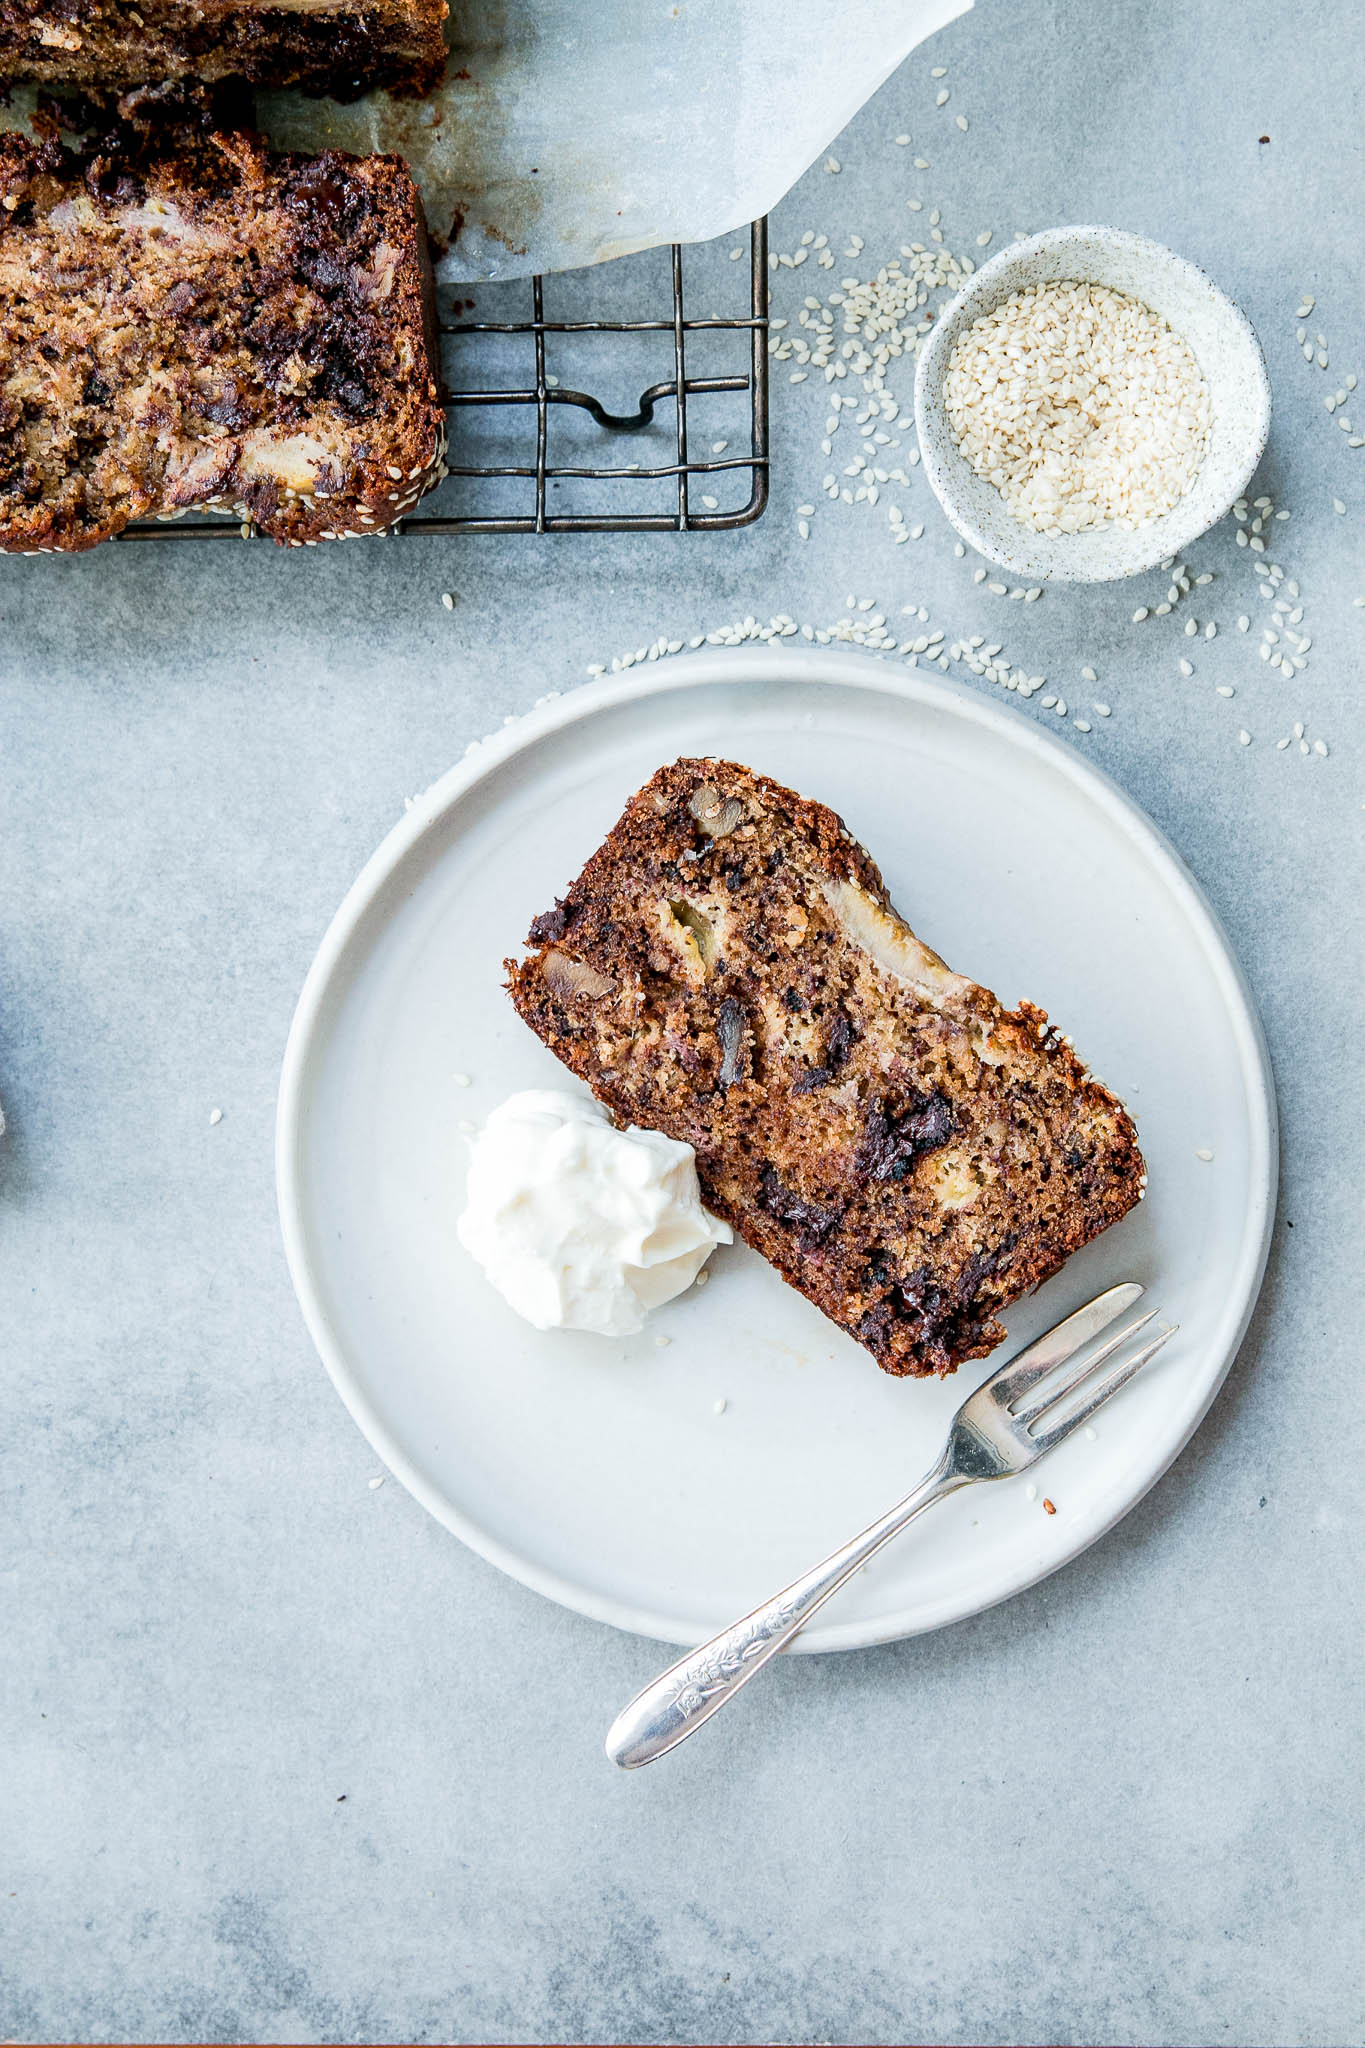 Tahini, Walnut & Dark Chocolate Banana Bread - The Brick Kitchen